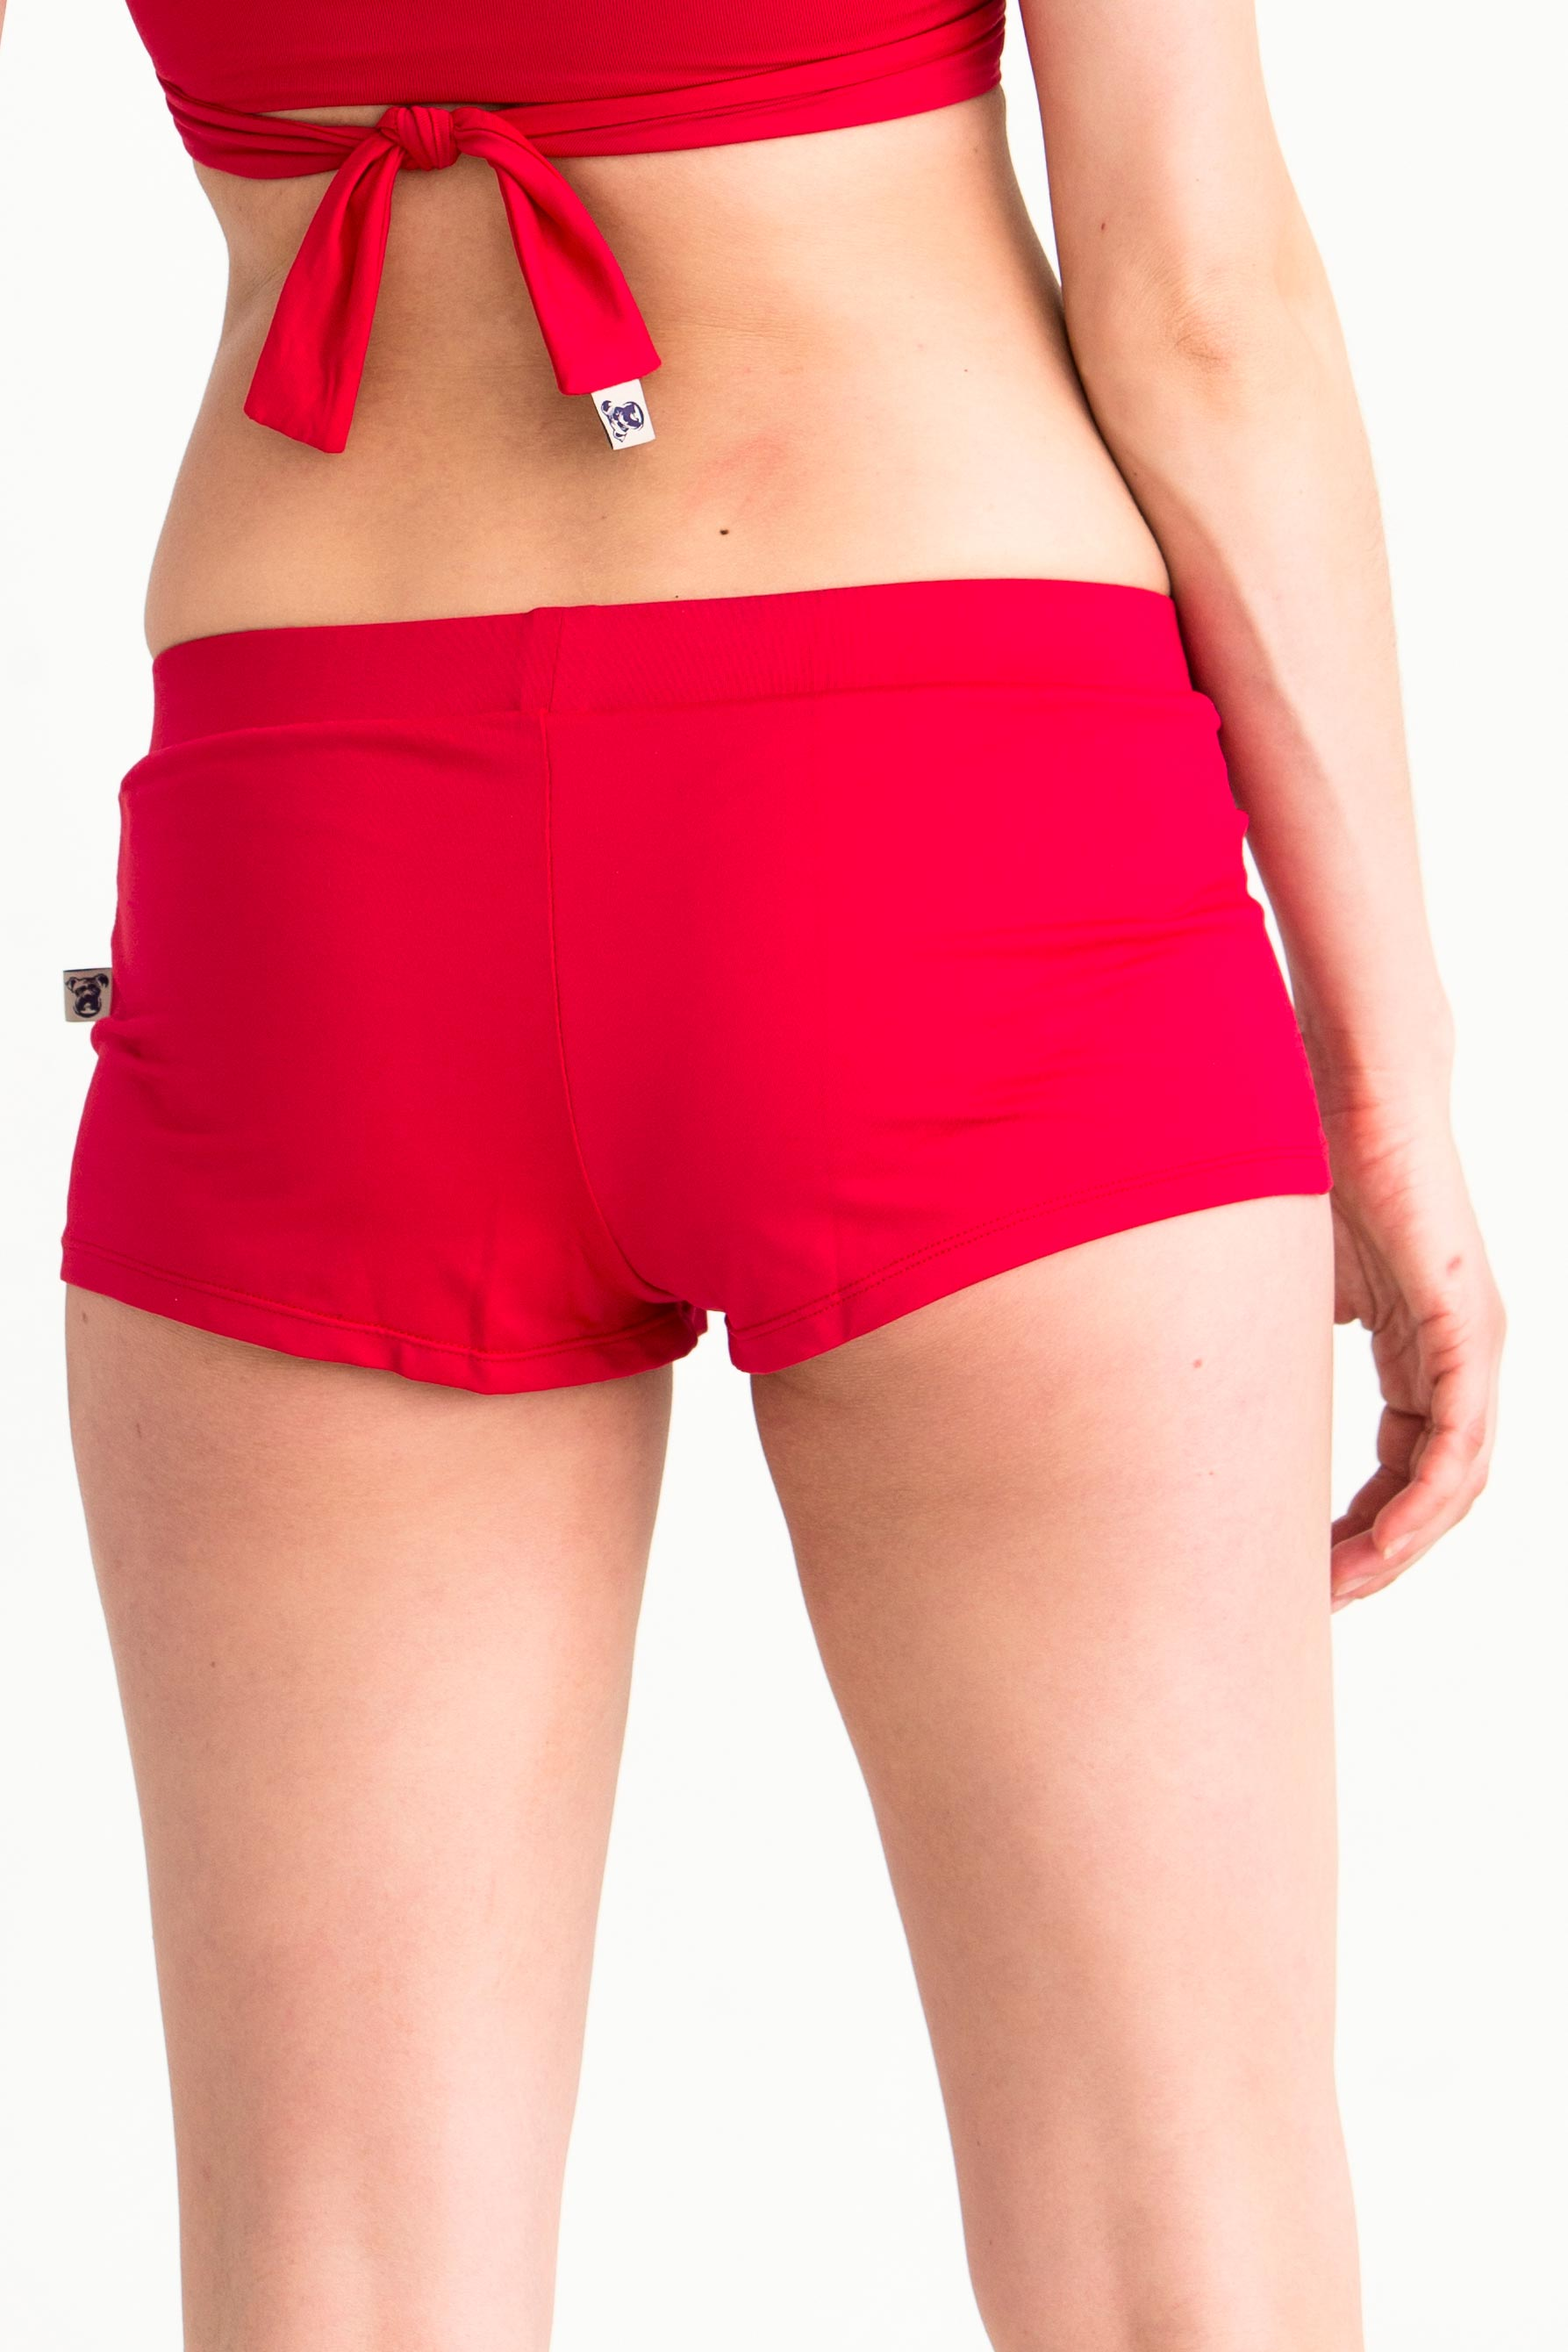 bib-bottom-short-pockets-daniela-rasp7